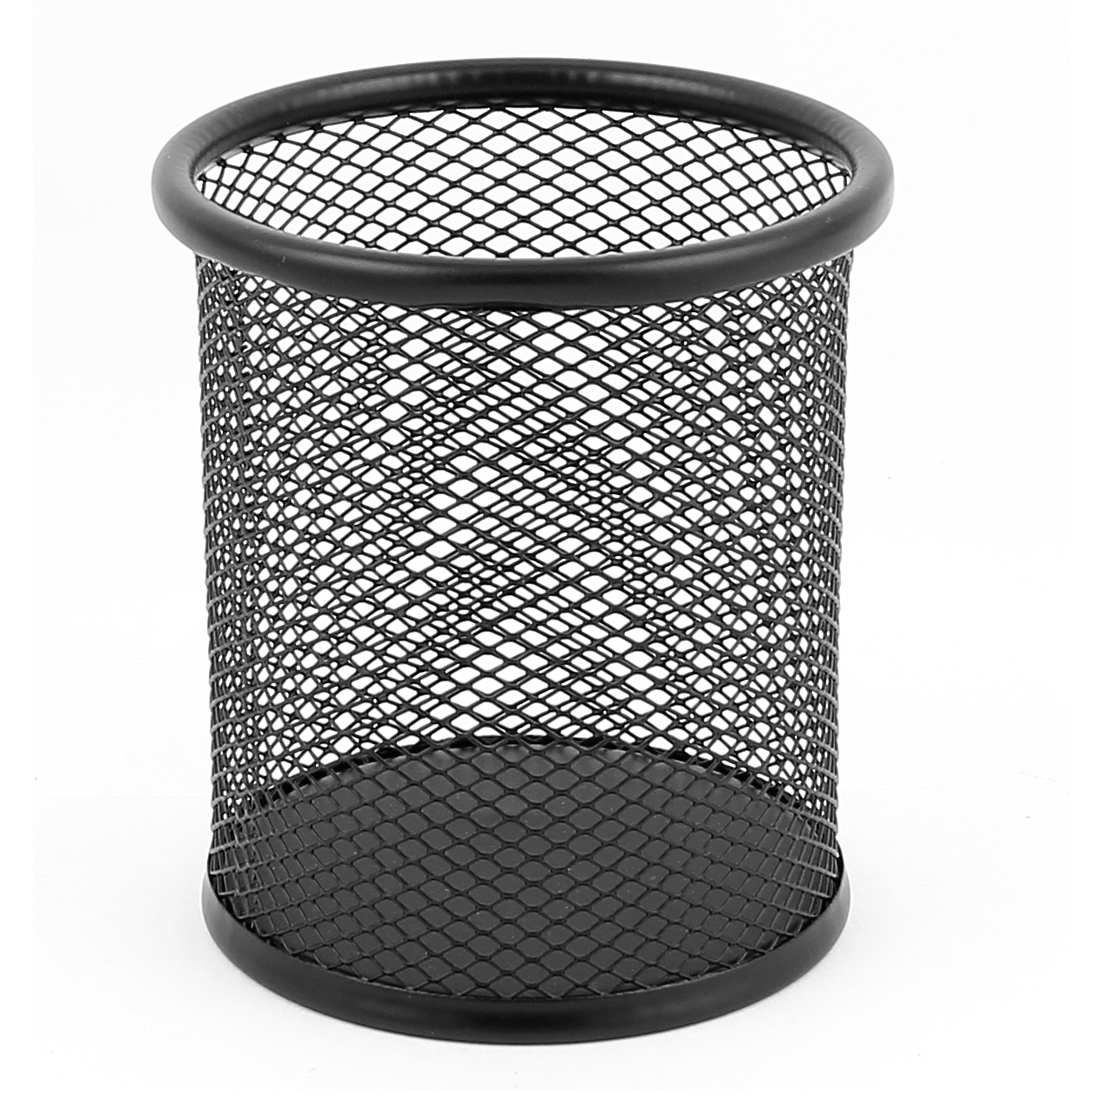 Office Metal Cylinder Shape Mesh Pen Pencil Ruler Holder Container Storage Organizer Black